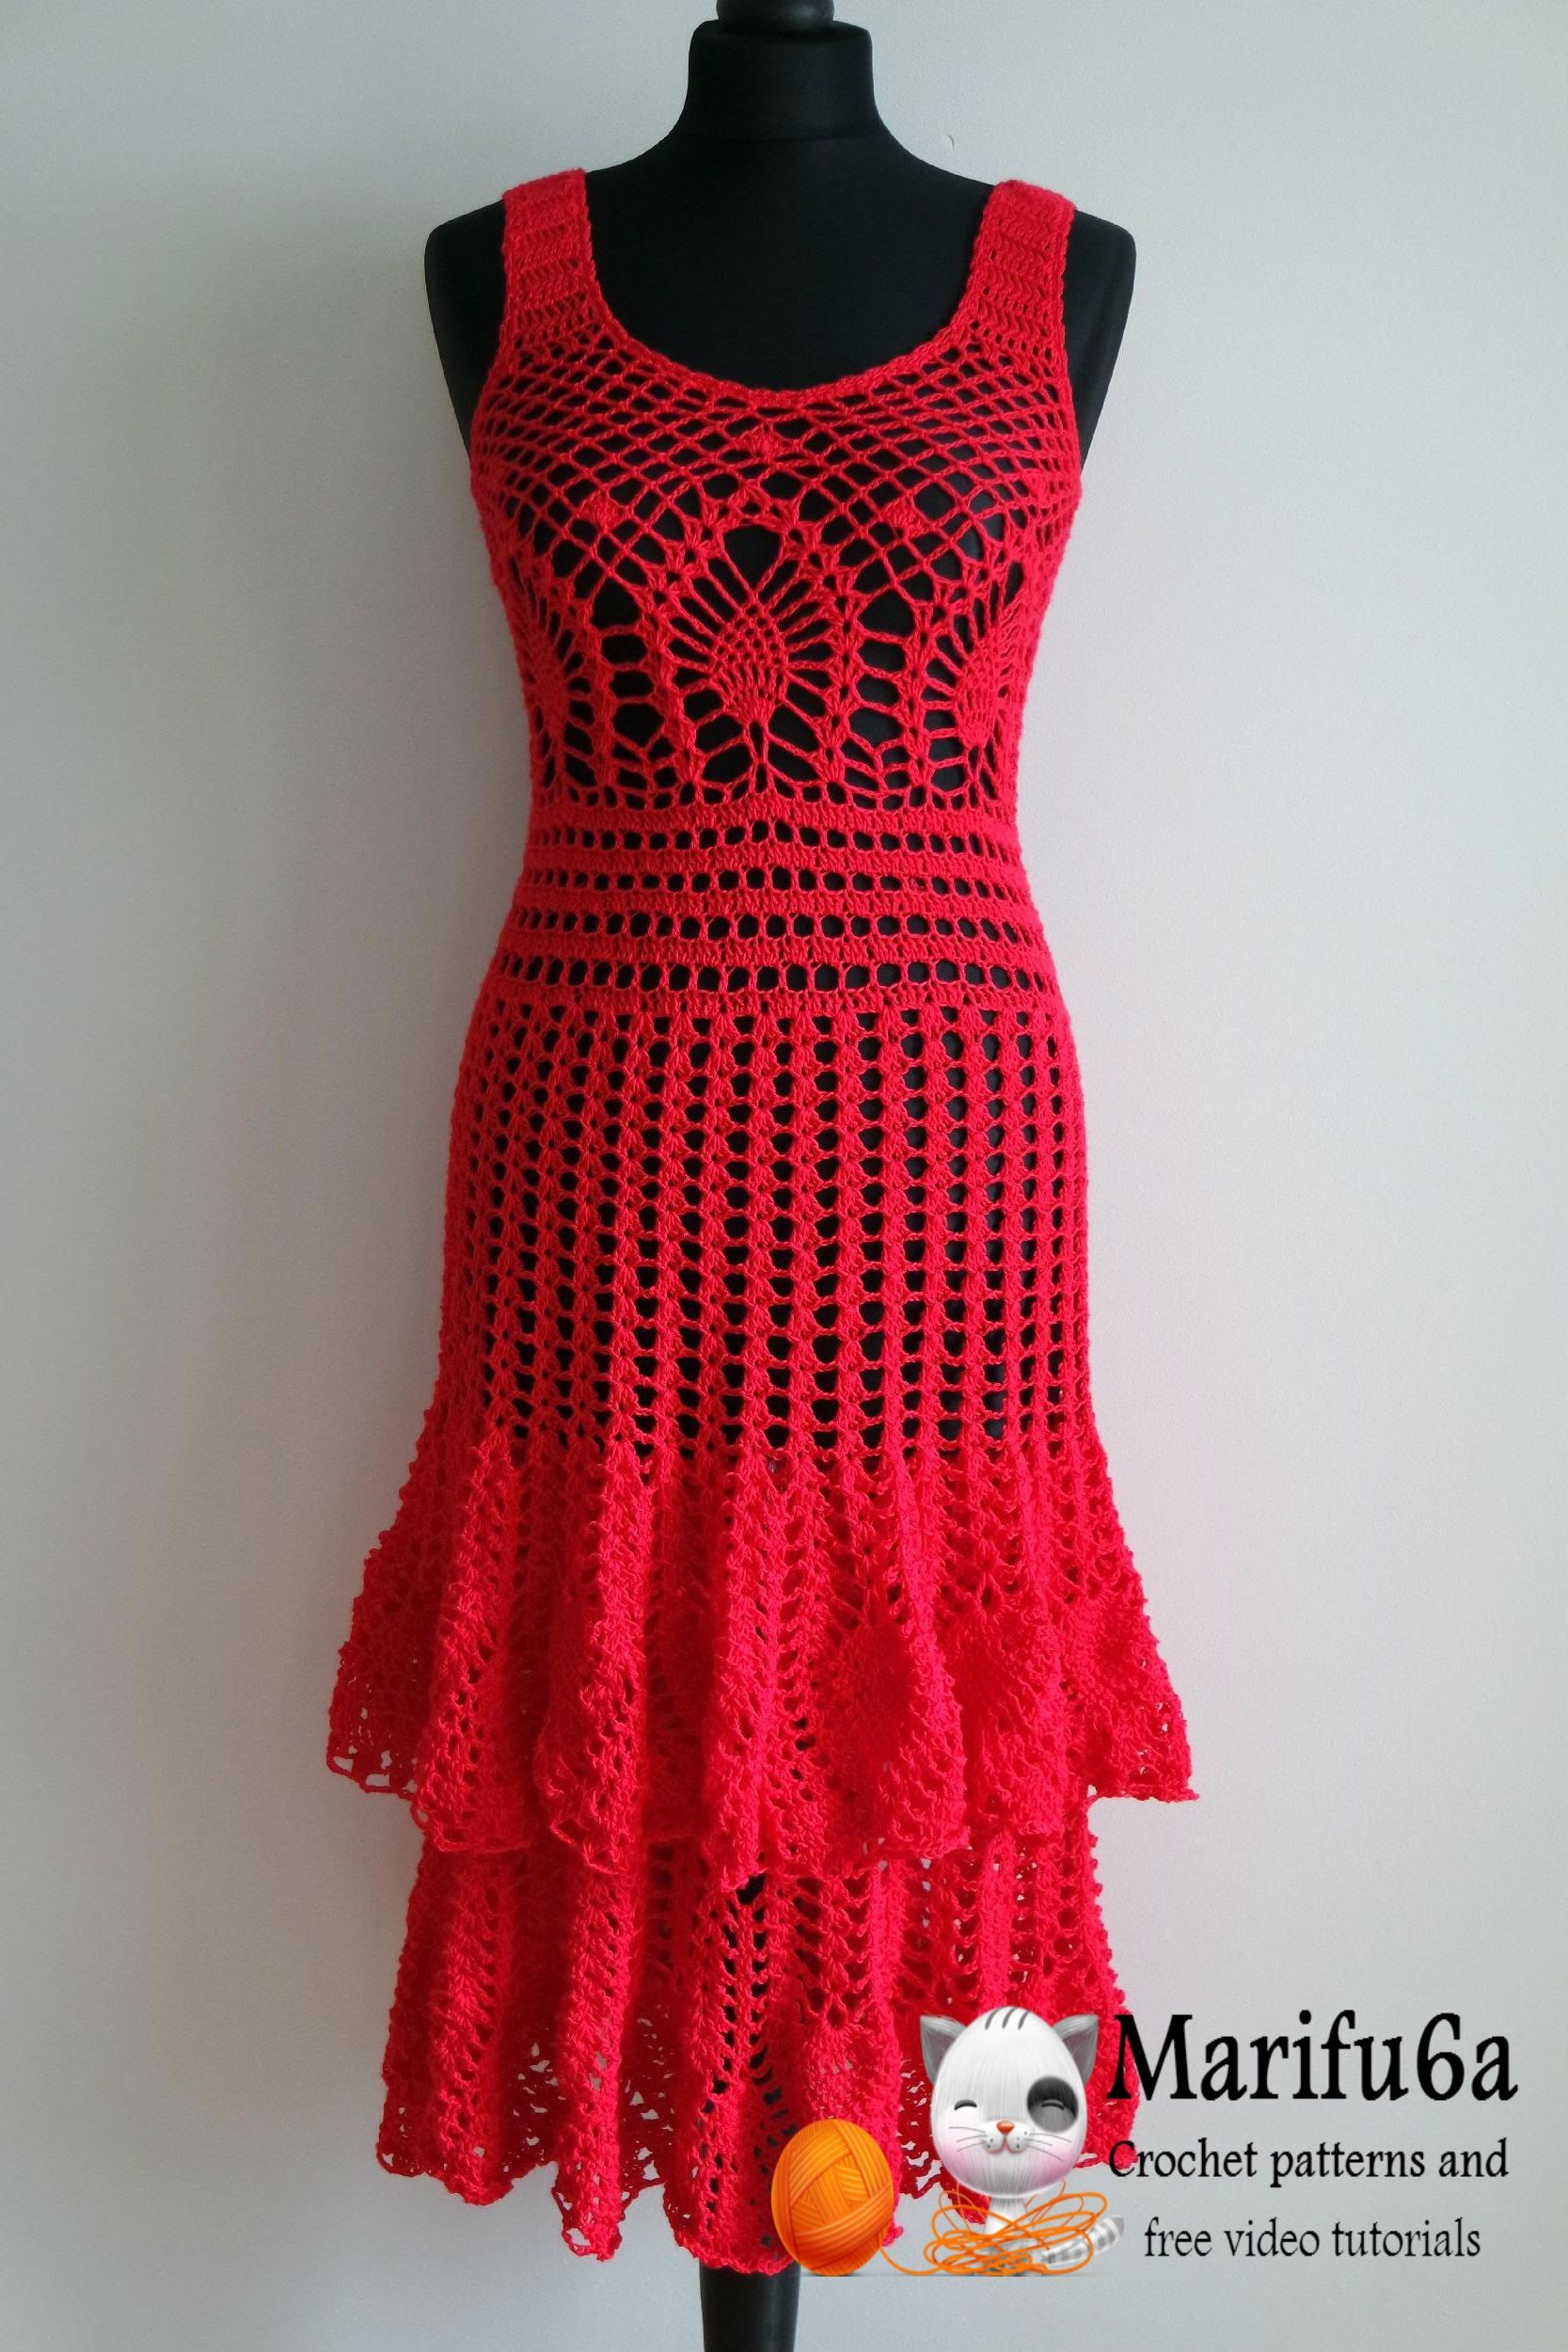 Crocheted Dress Patterns Just in Time for Christmas! | Crochet ...